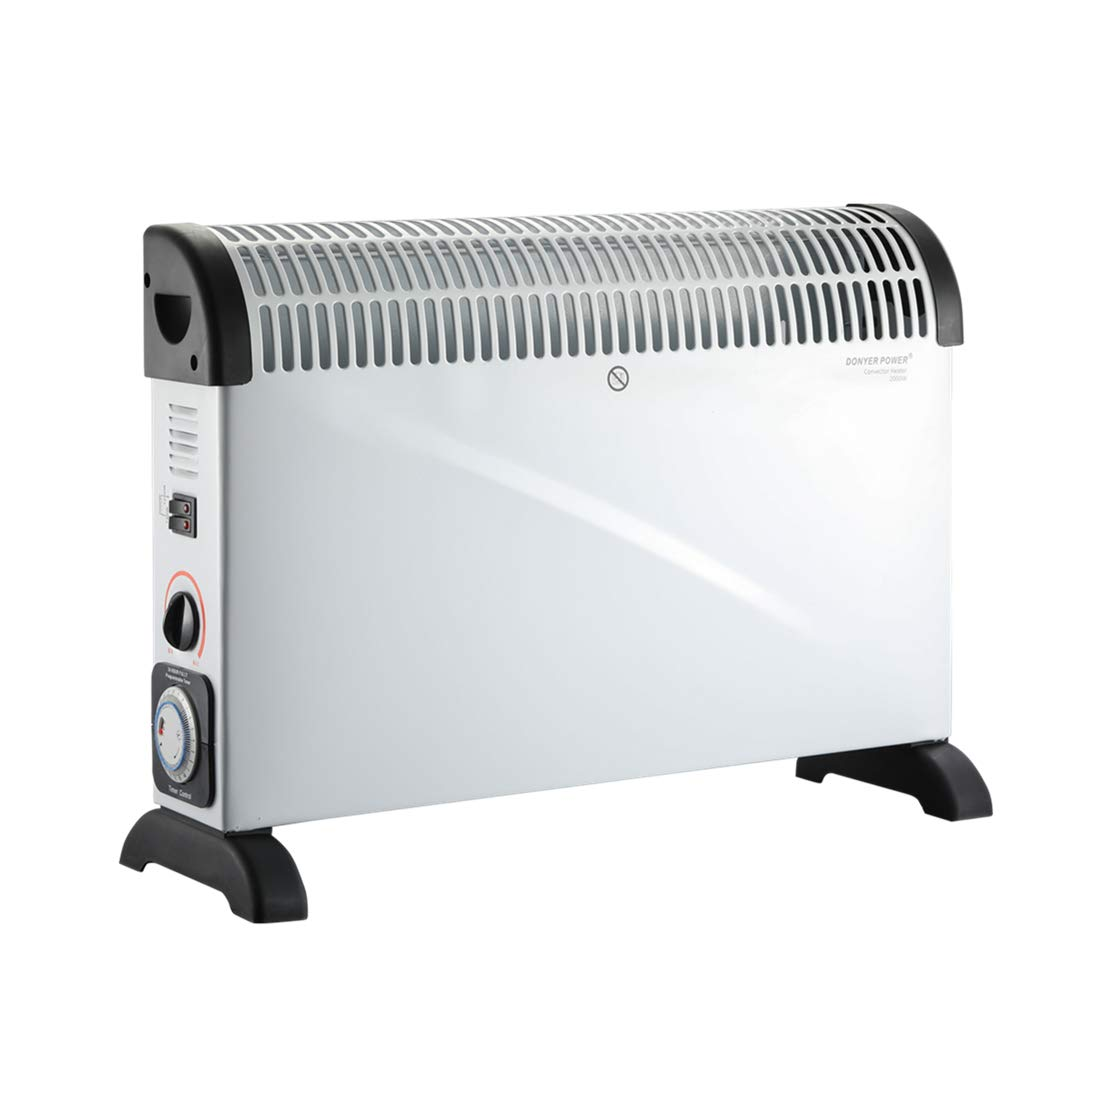 DONEY POWER Convector Radiator Heater with Adjustable Thermostat Wall Mounted Or Free Standing in white, 2000 Watt YOUBAO